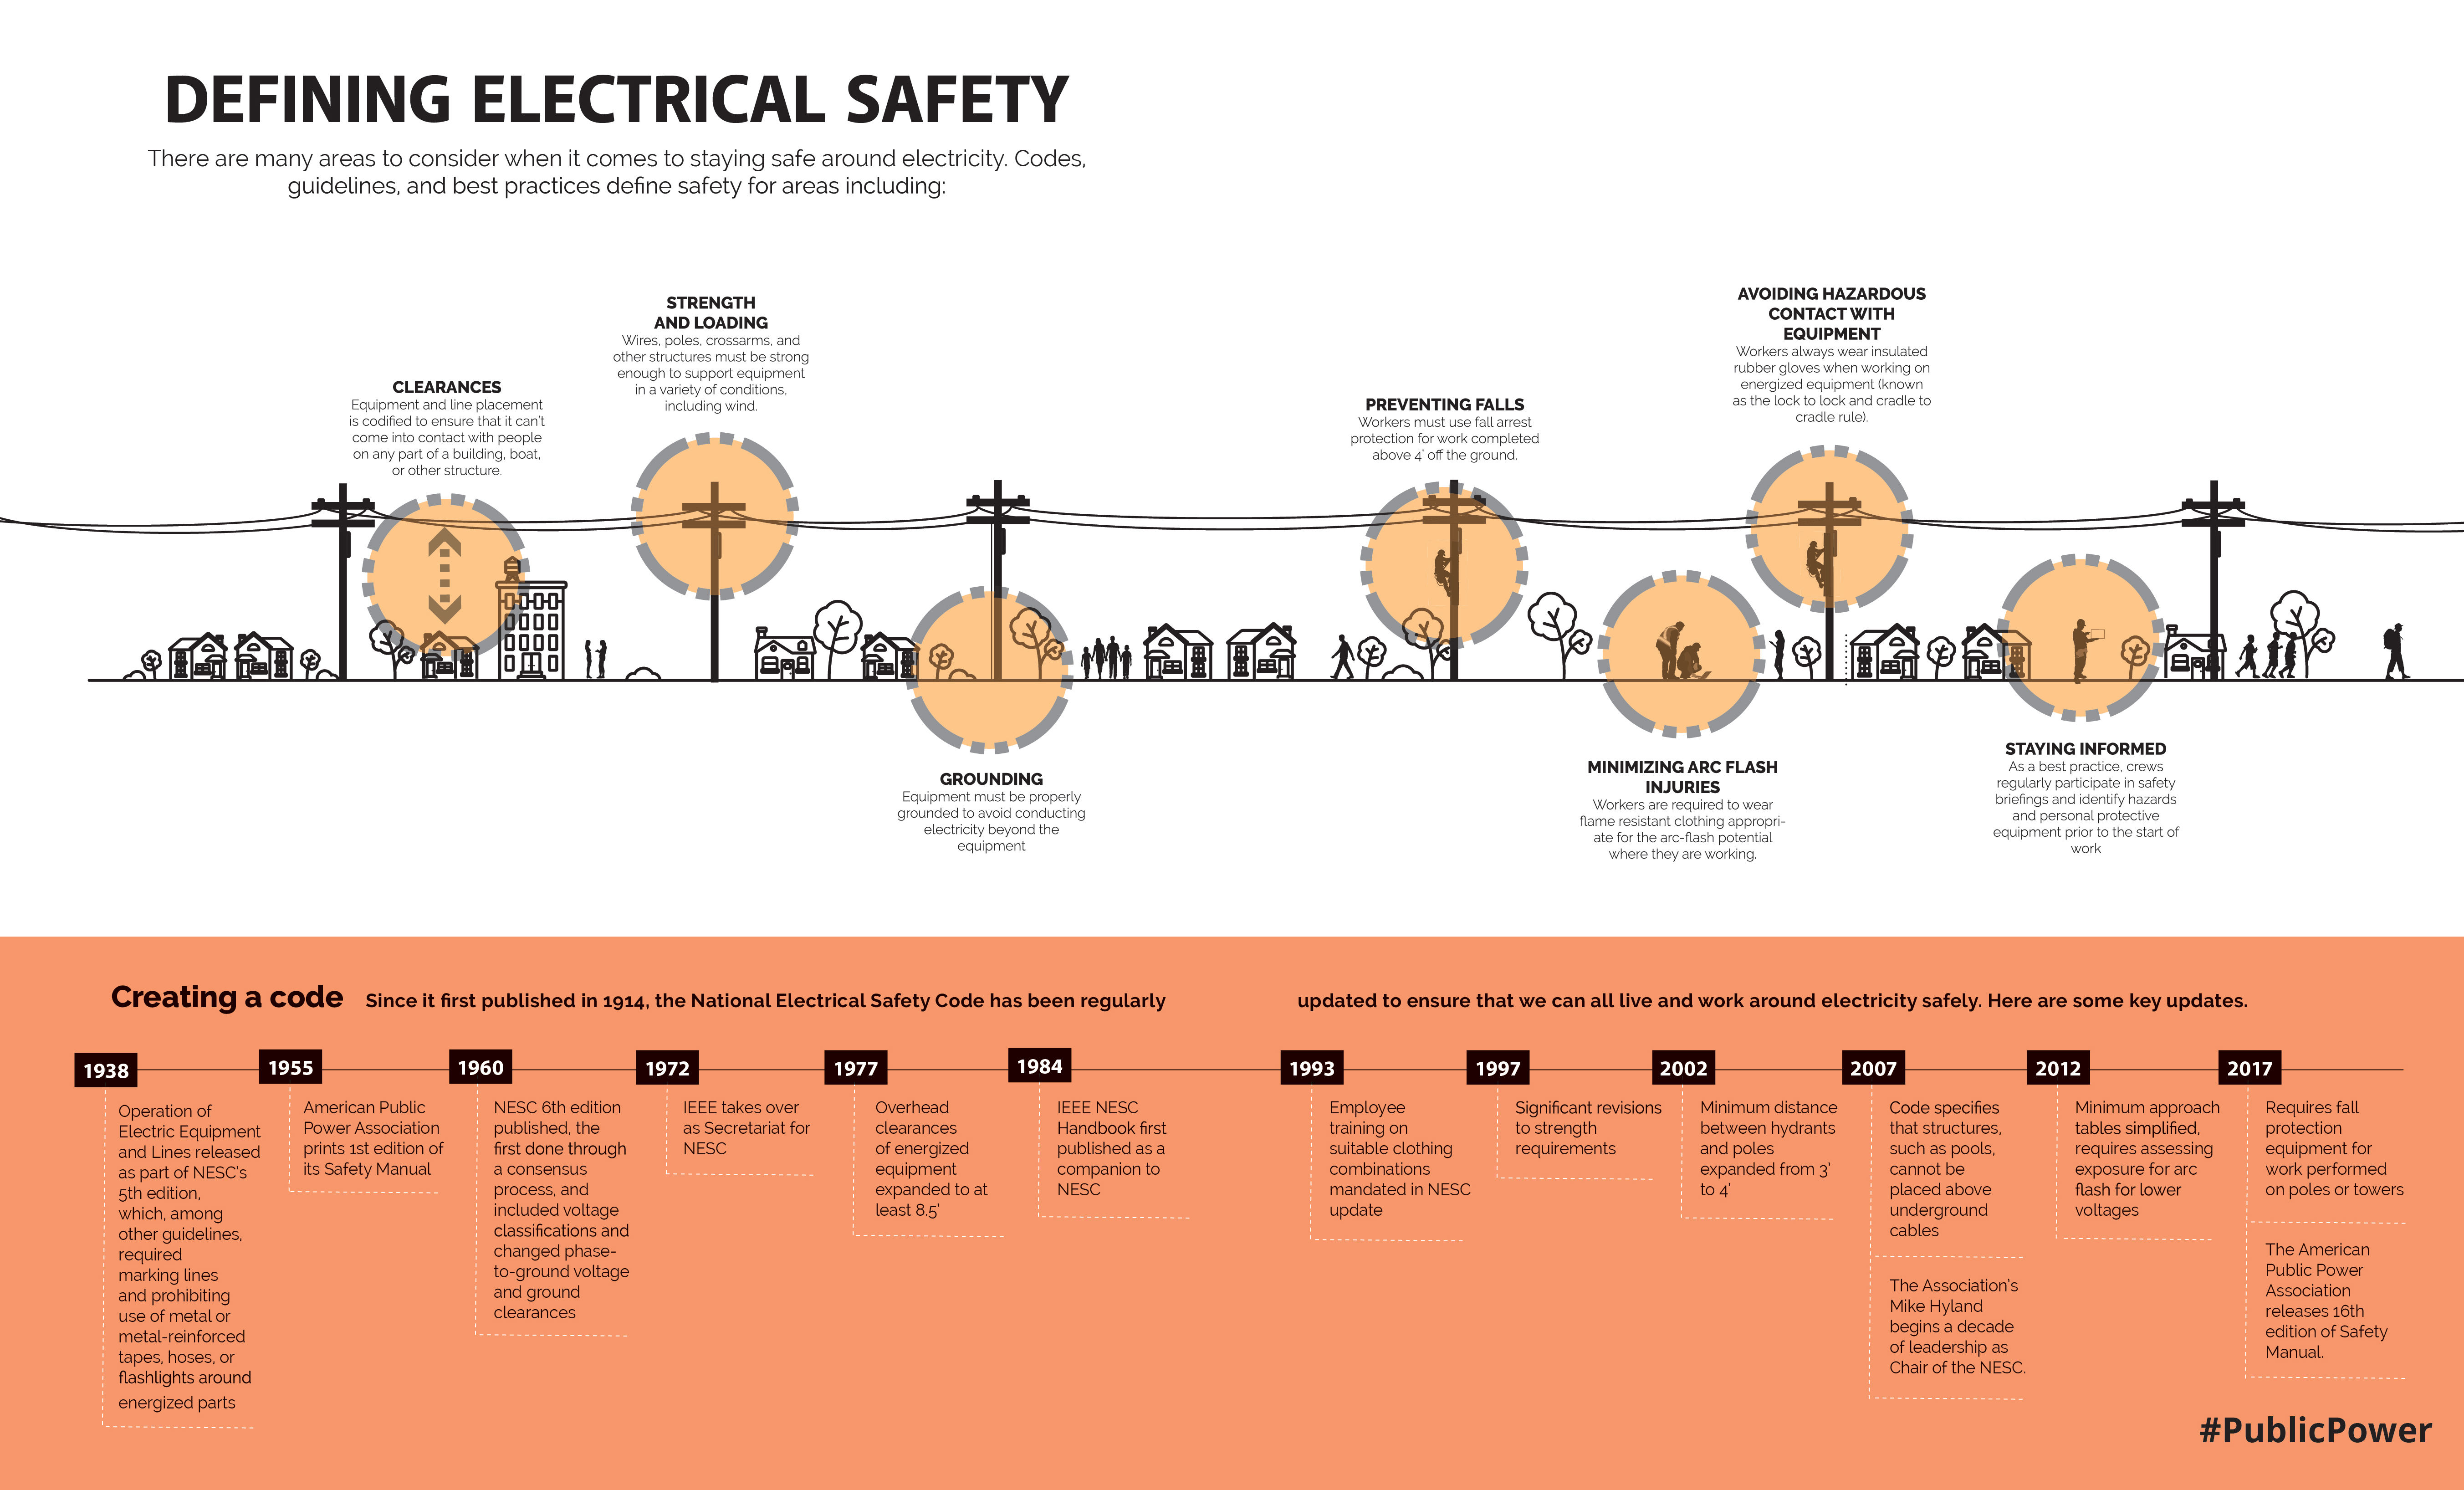 timeline of national electrical safety code and key areas covered